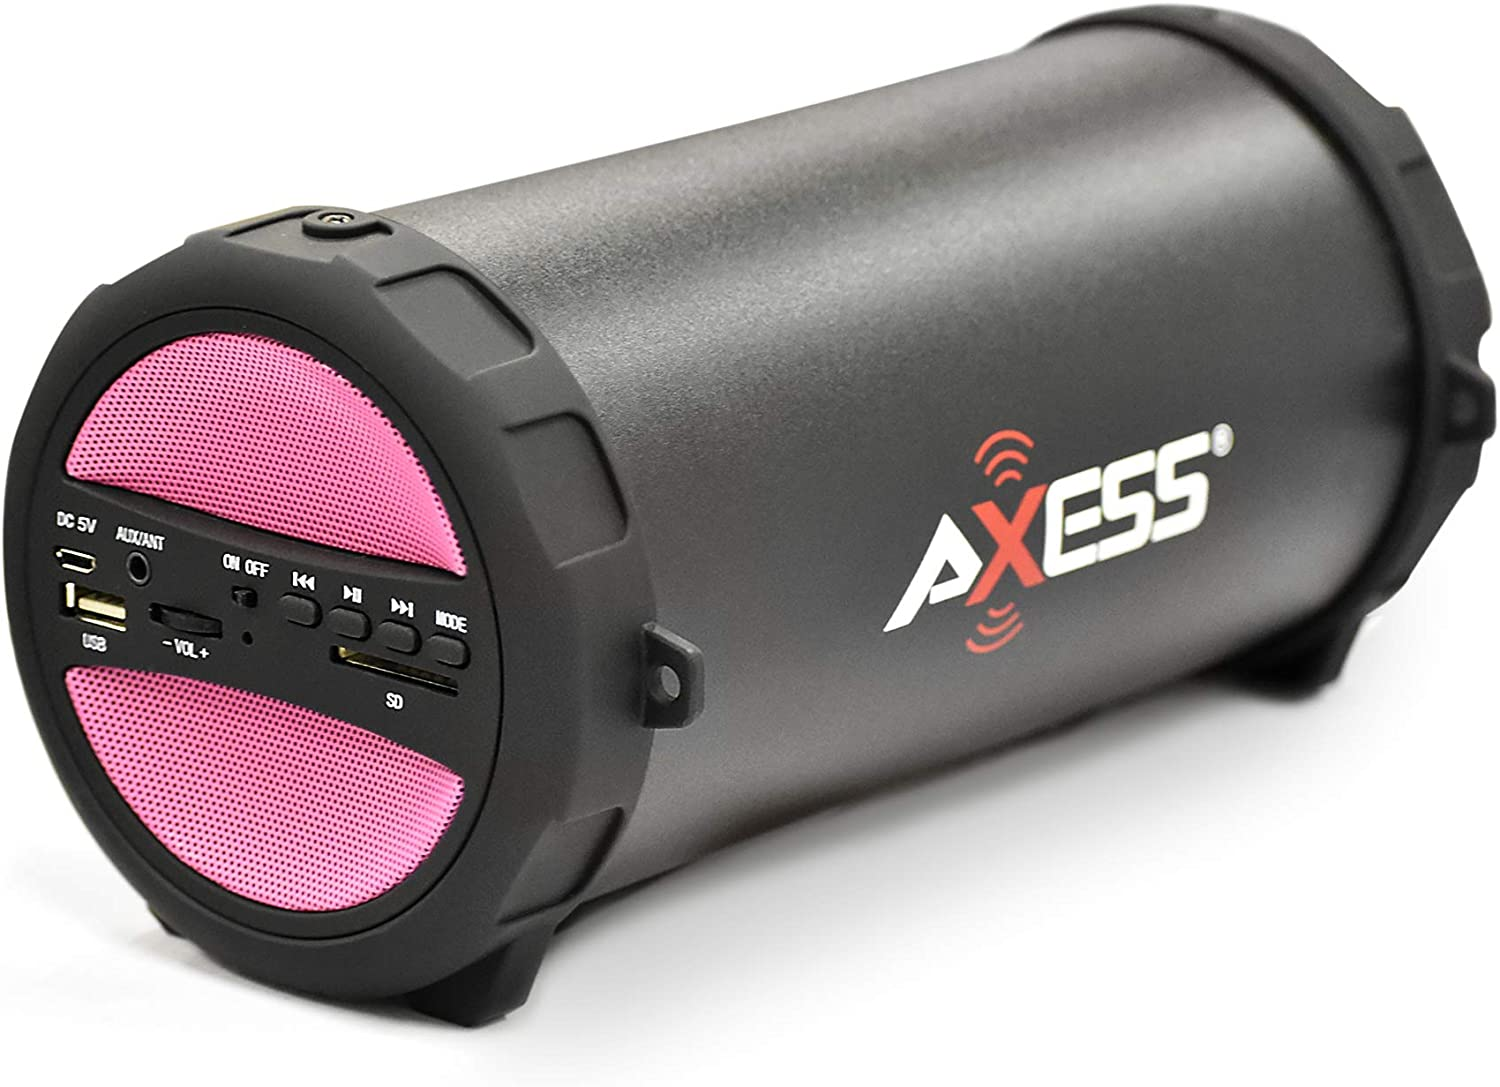 AXESS SPBT1041 Portable Thunder Sonic Bluetooth Cylinder Loud Speaker with Built-in FM Radio, SD Card, USB, AUX Inputs in Pink